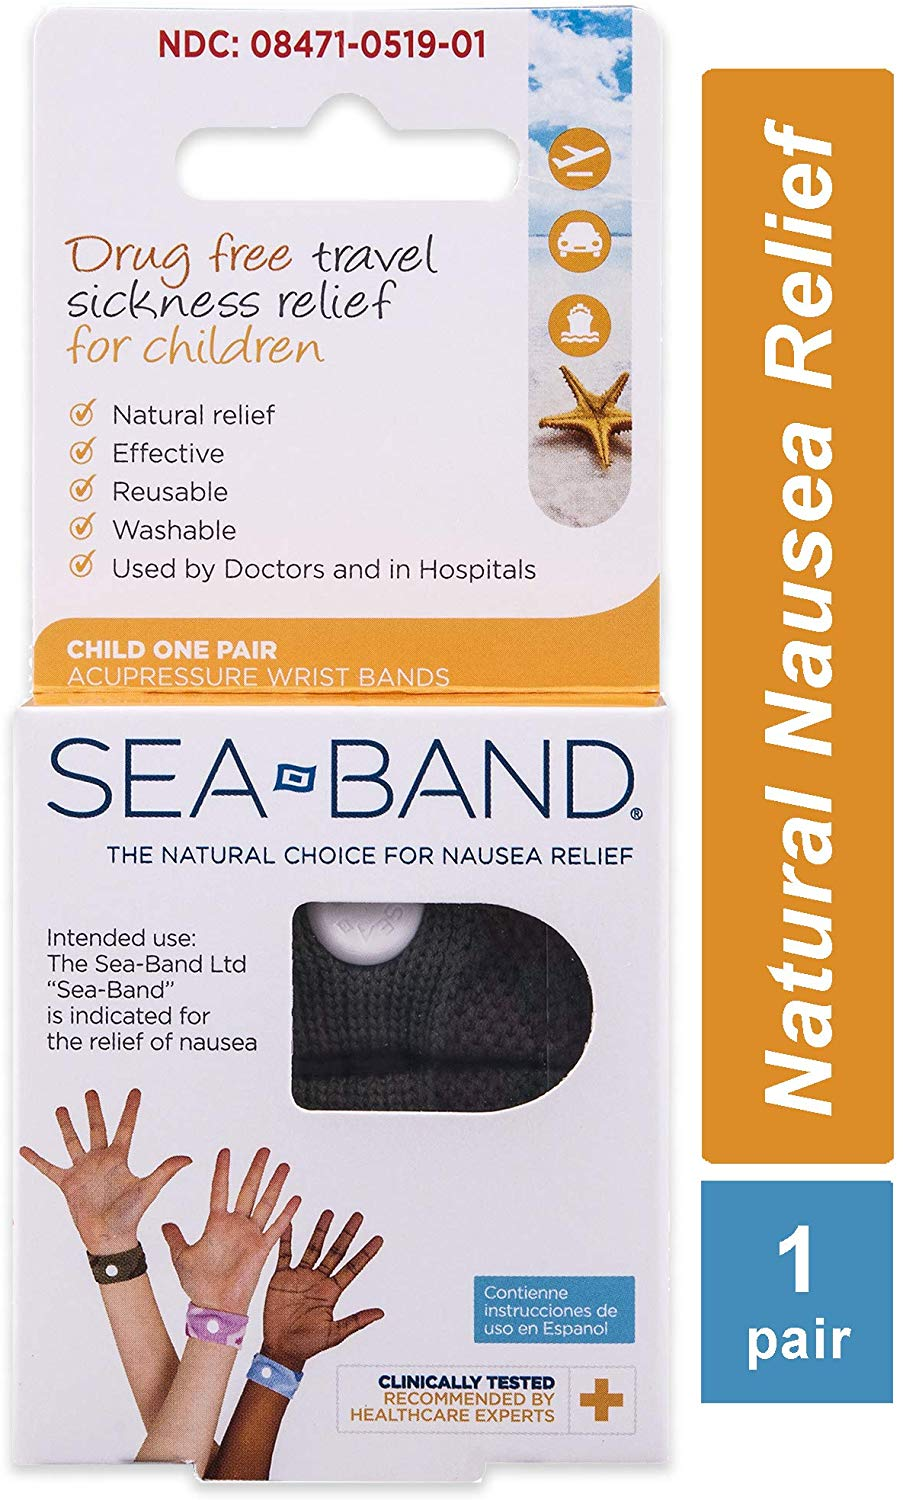 Seabands for morning sickness relief